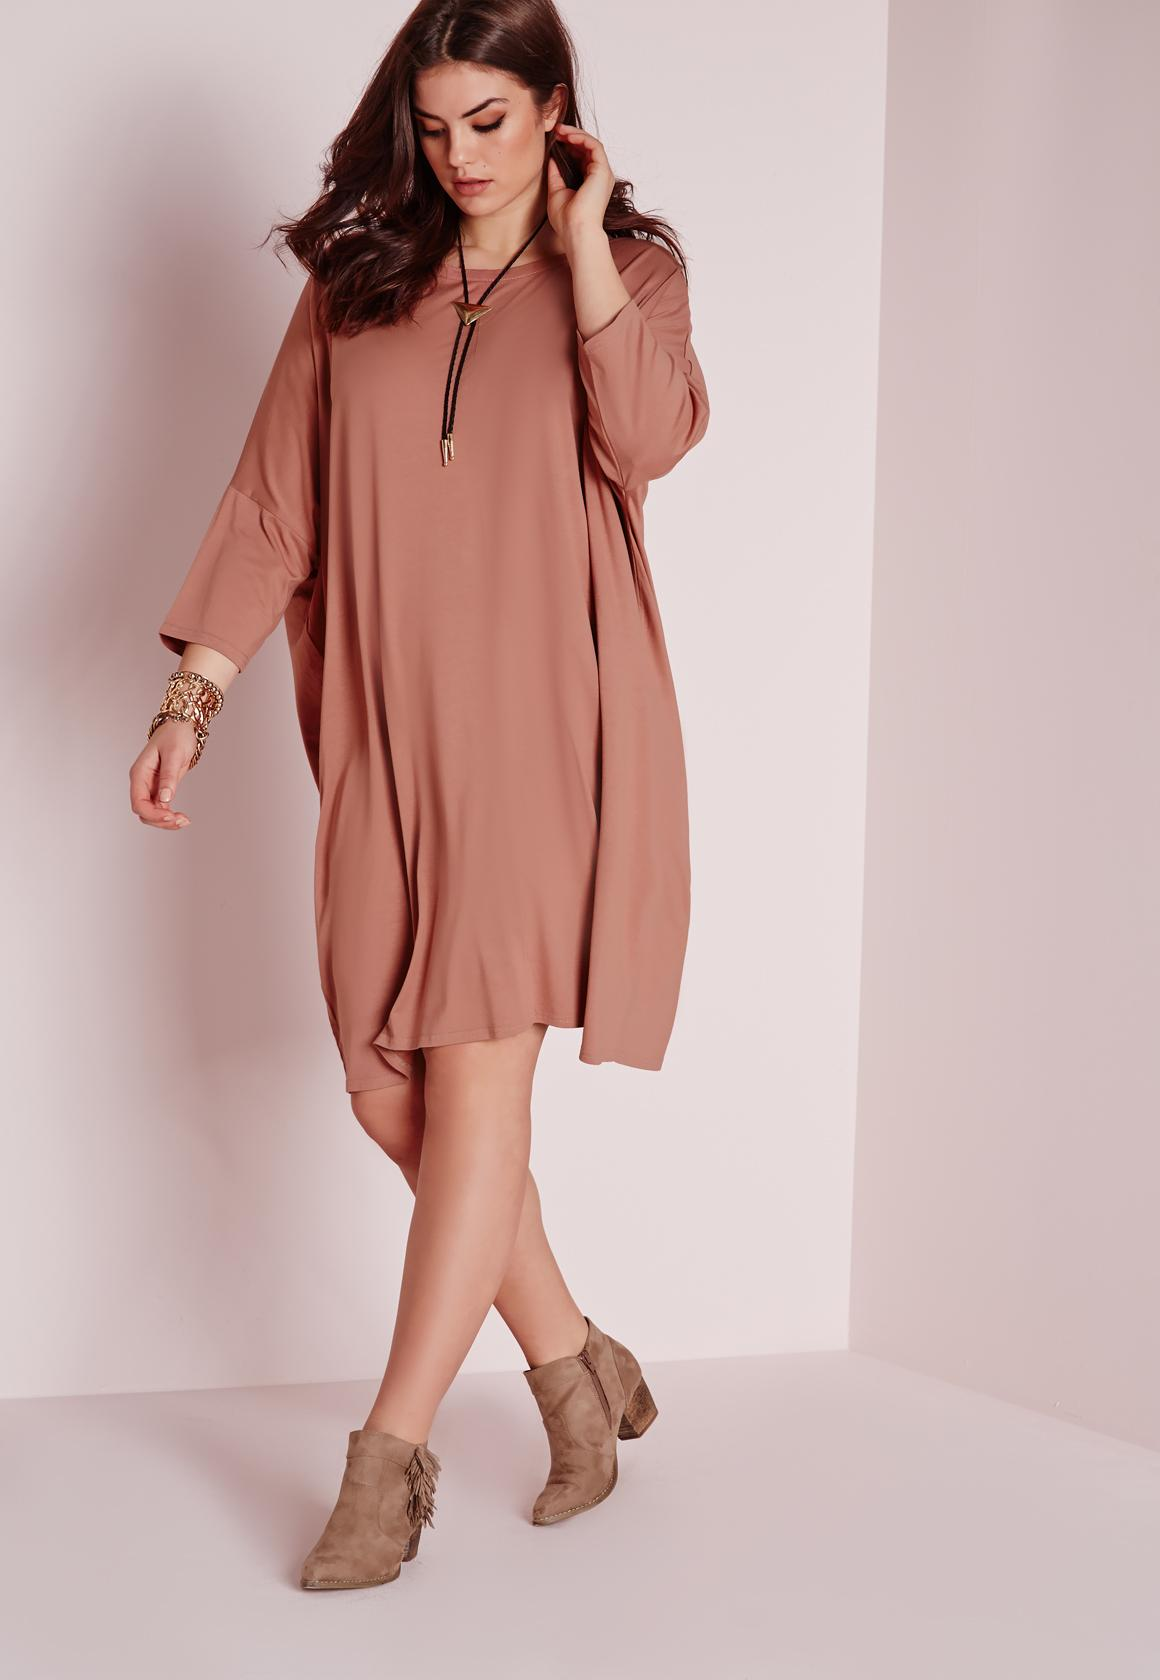 Maxi t shirt dress plus size